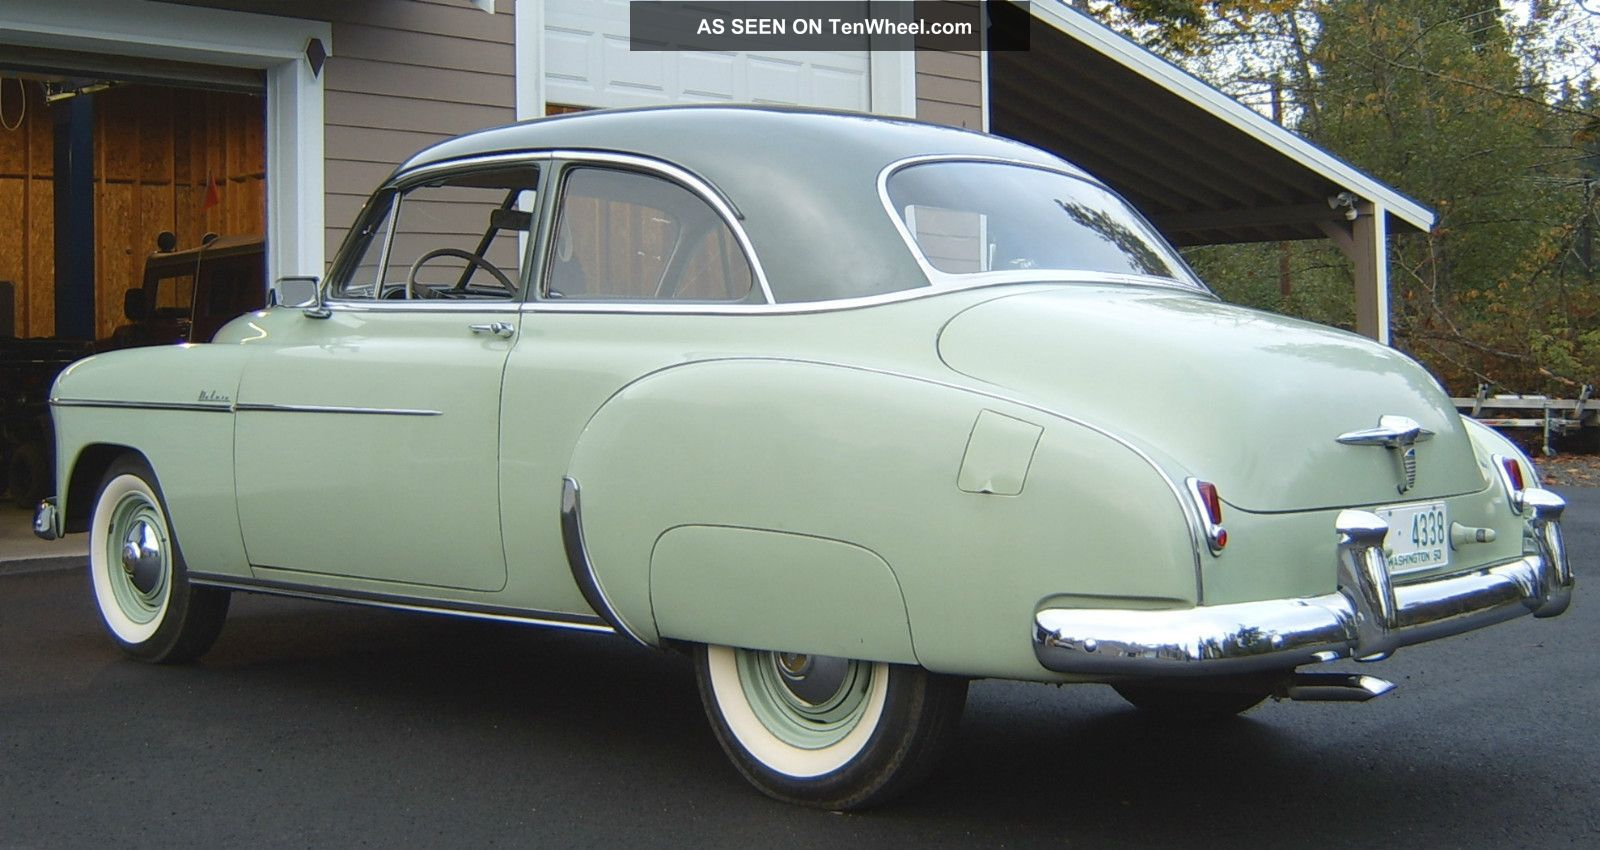 Ford All Wheel Drive Cars 1950 Chevrolet Styleline Deluxe